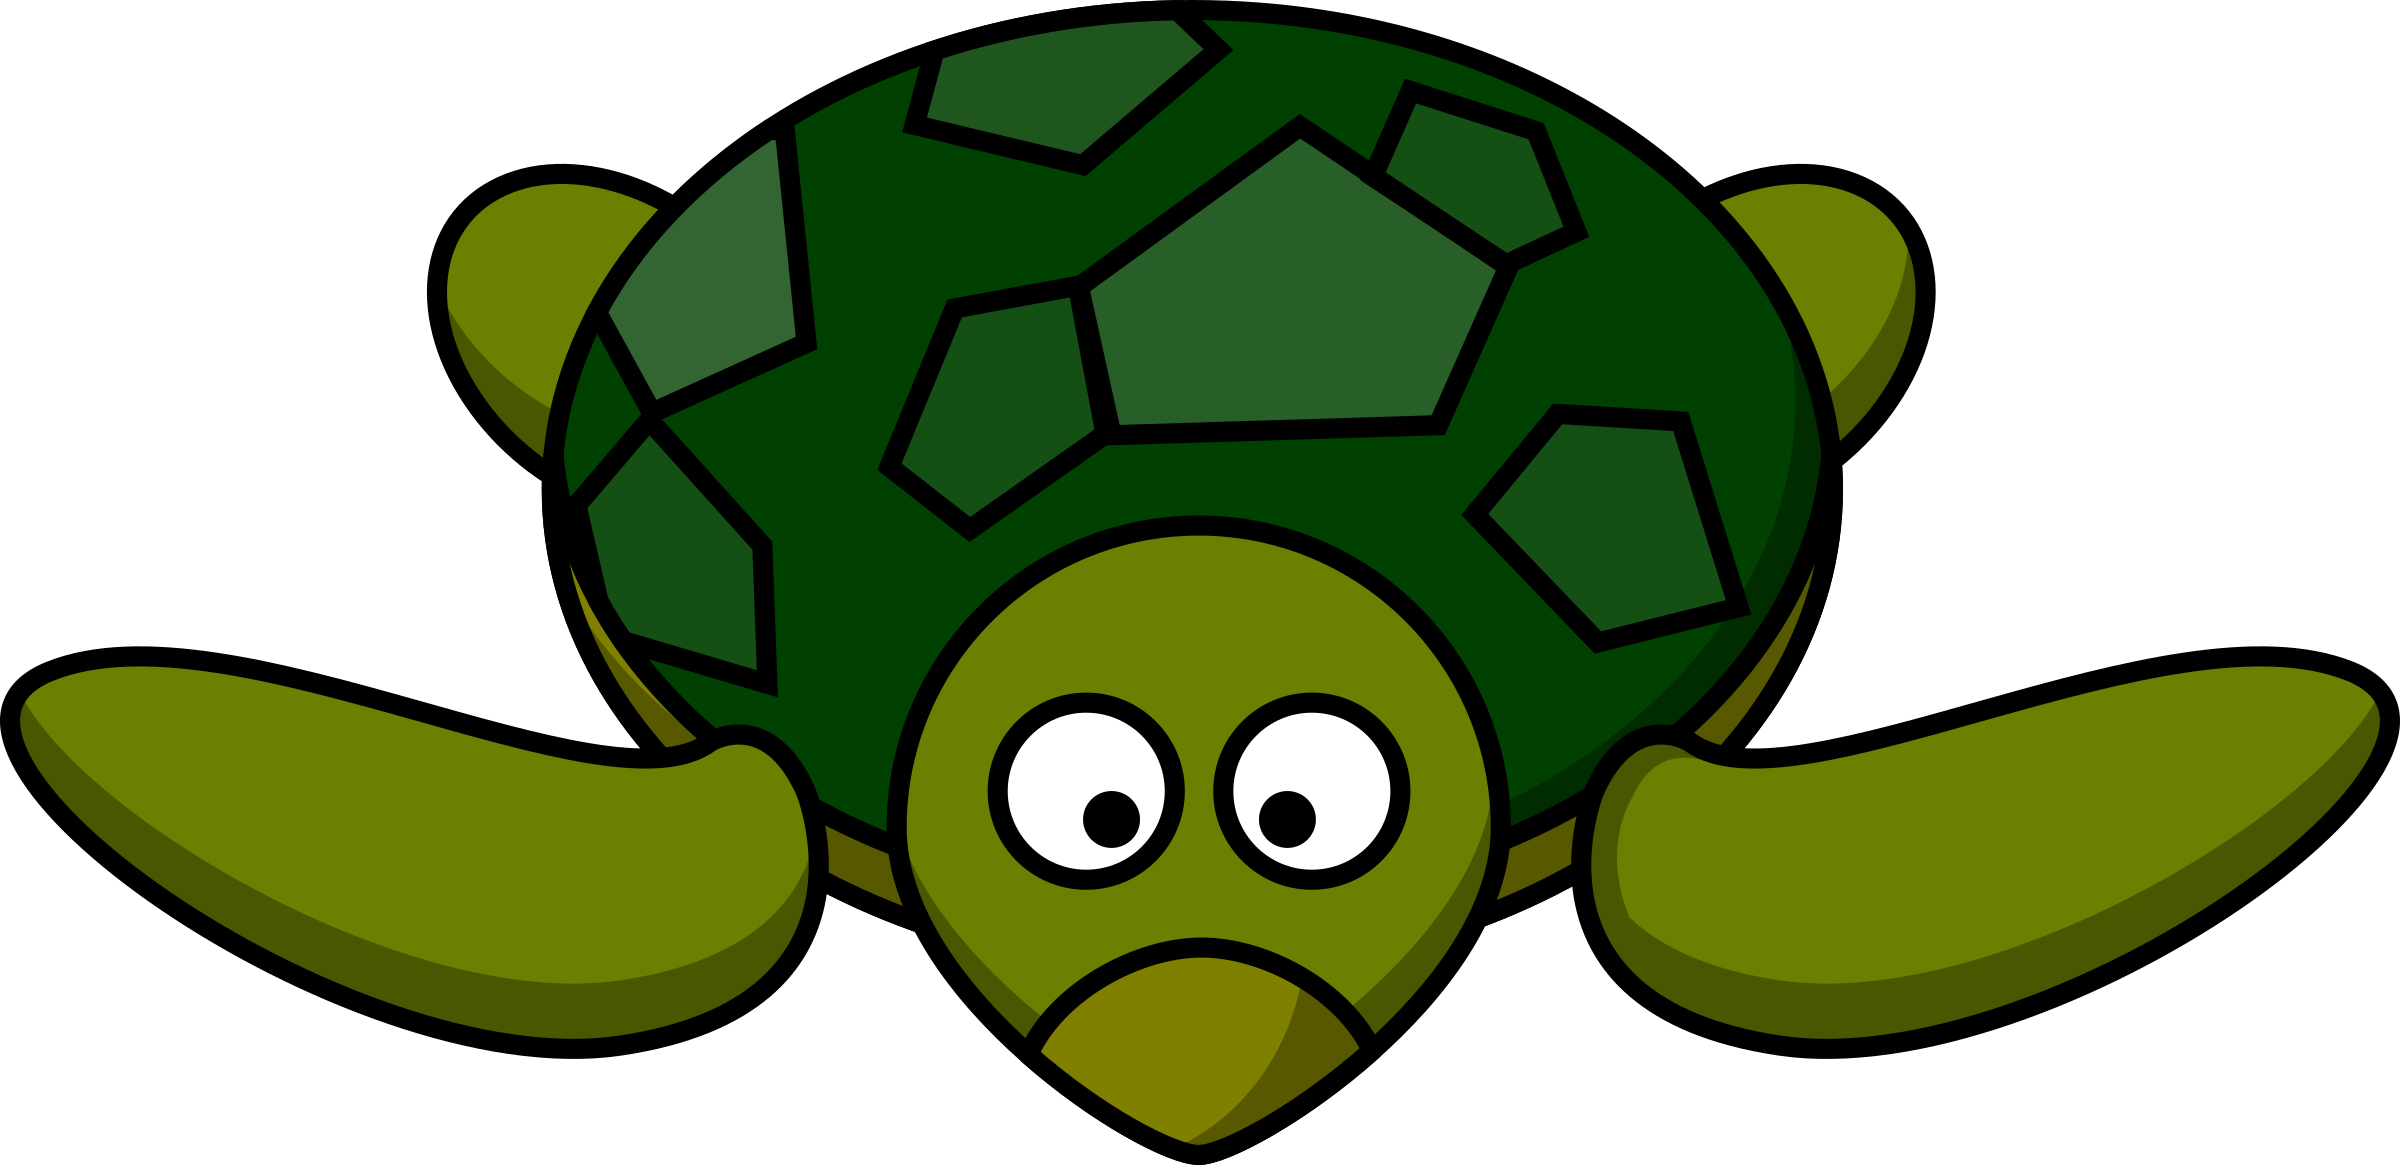 Cartoon icons png free. Clipart turtle shadow